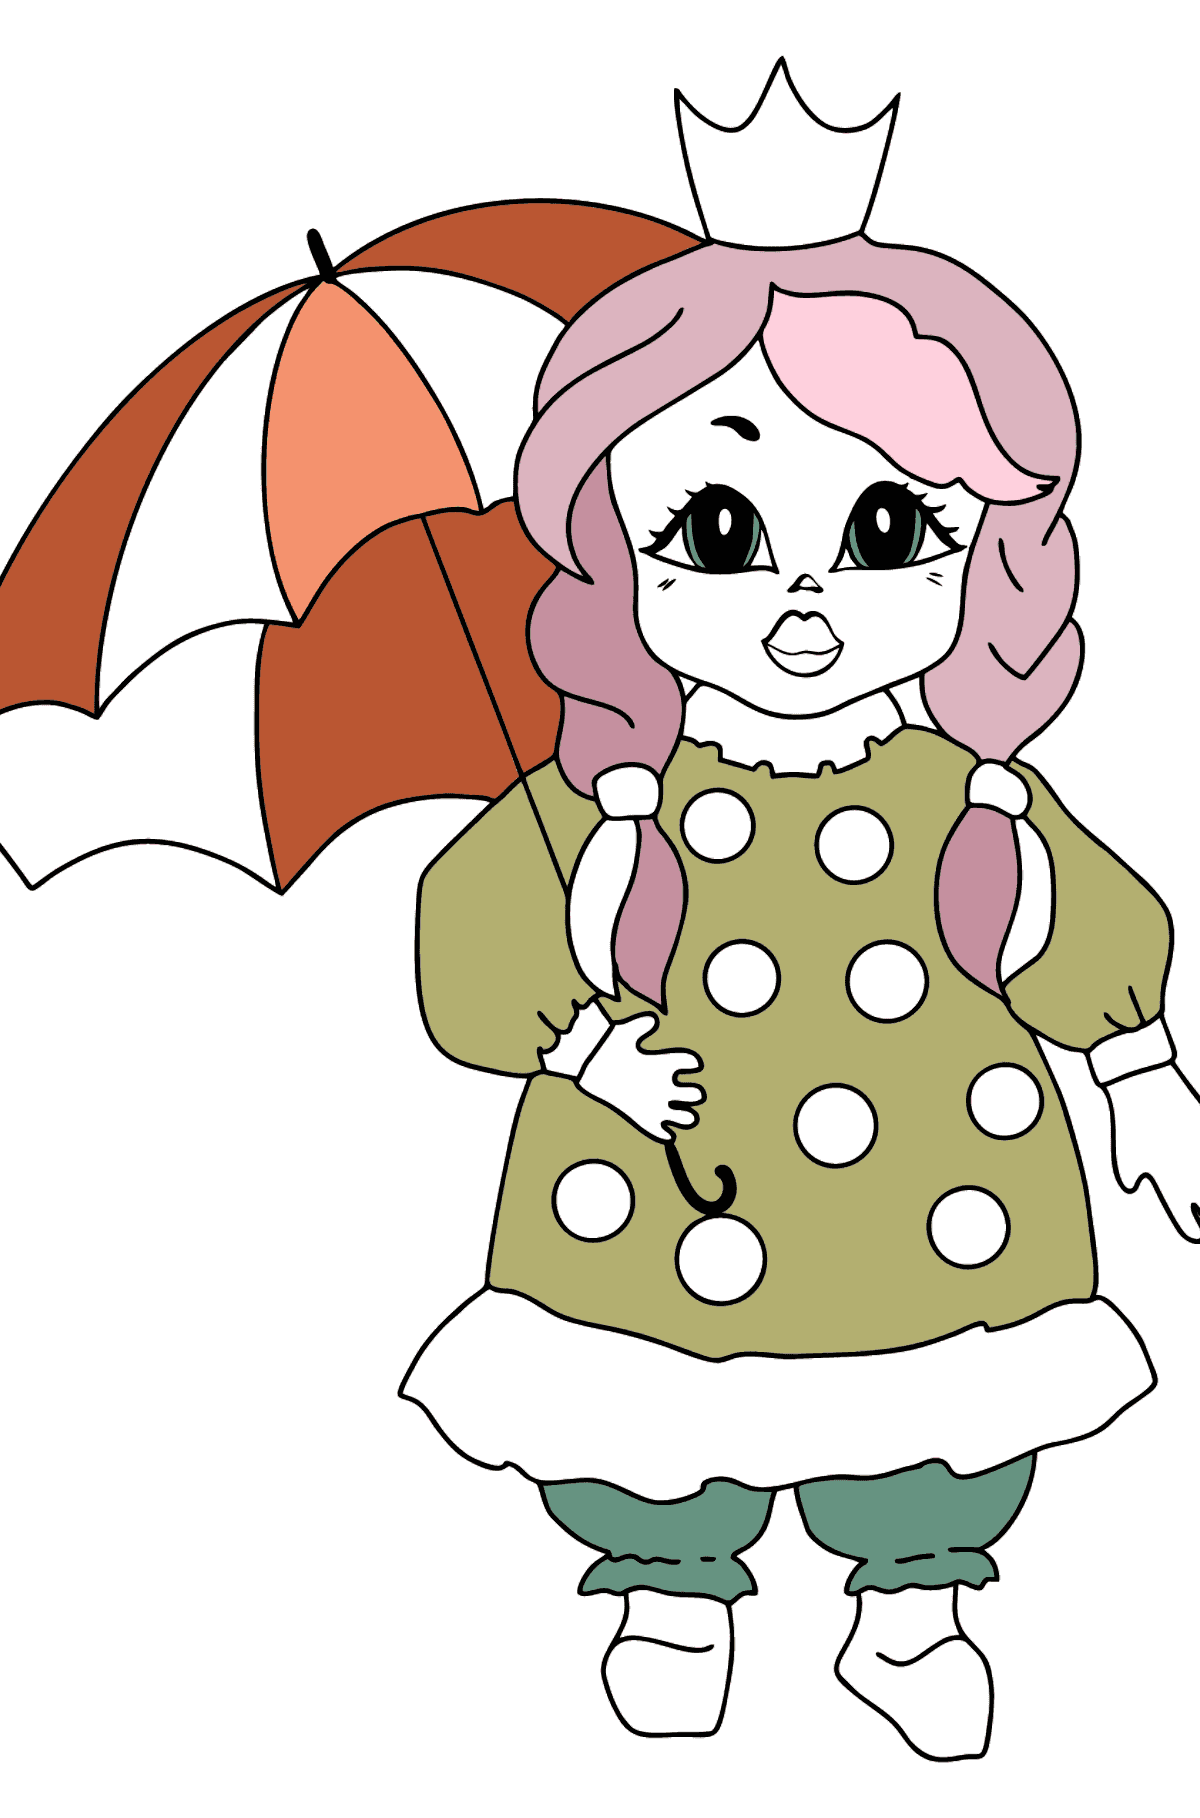 Coloring Page - A Princess with an Umbrella - For Girls - Coloring Pages for Kids